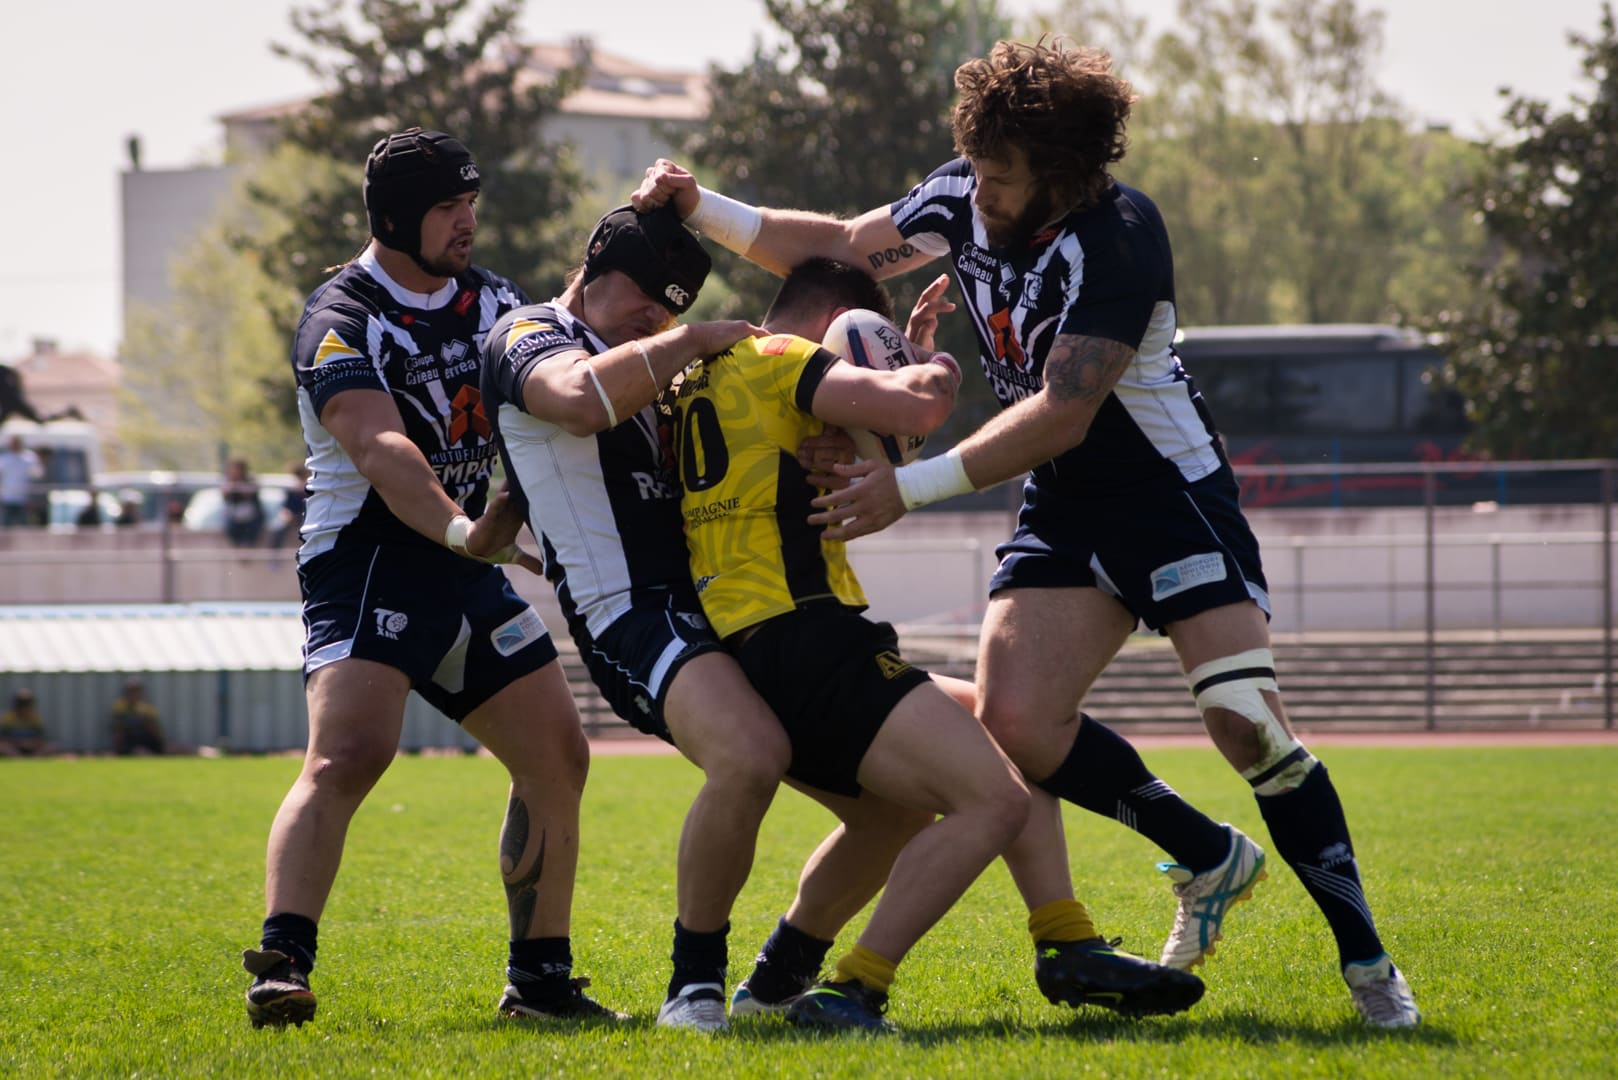 Photo de la finale de la coupe de France de Rugby à XIII : Toulouse - Carcassonne 23